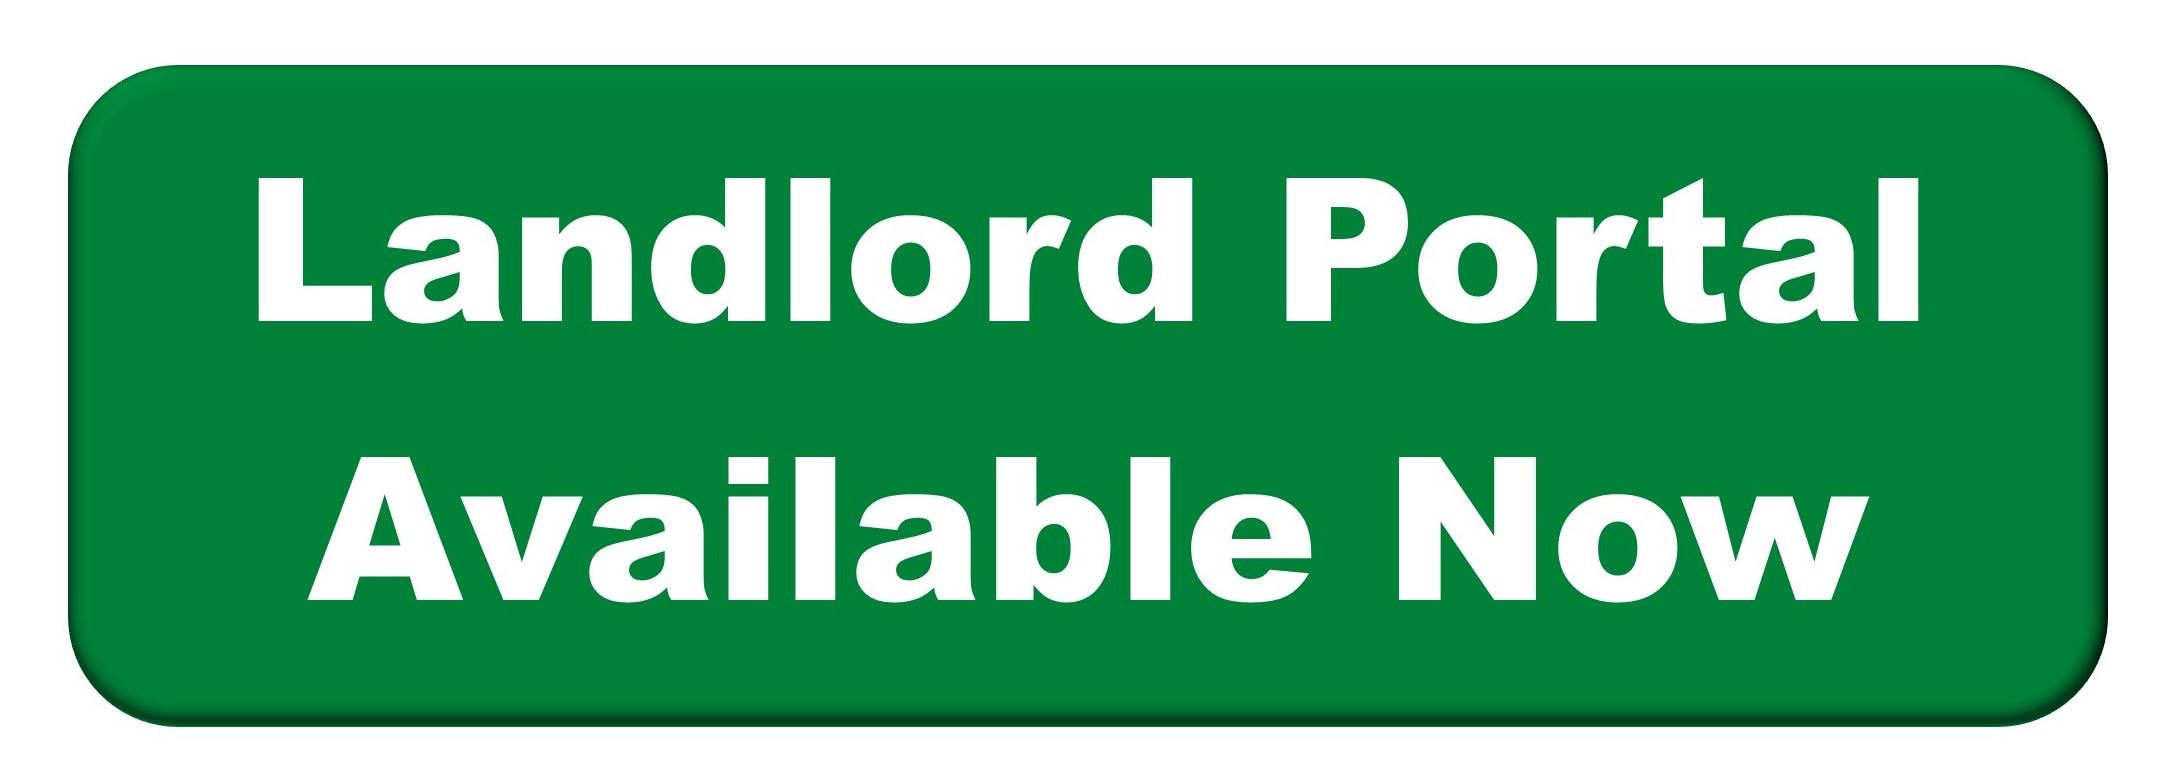 Landlord Portal Available Now